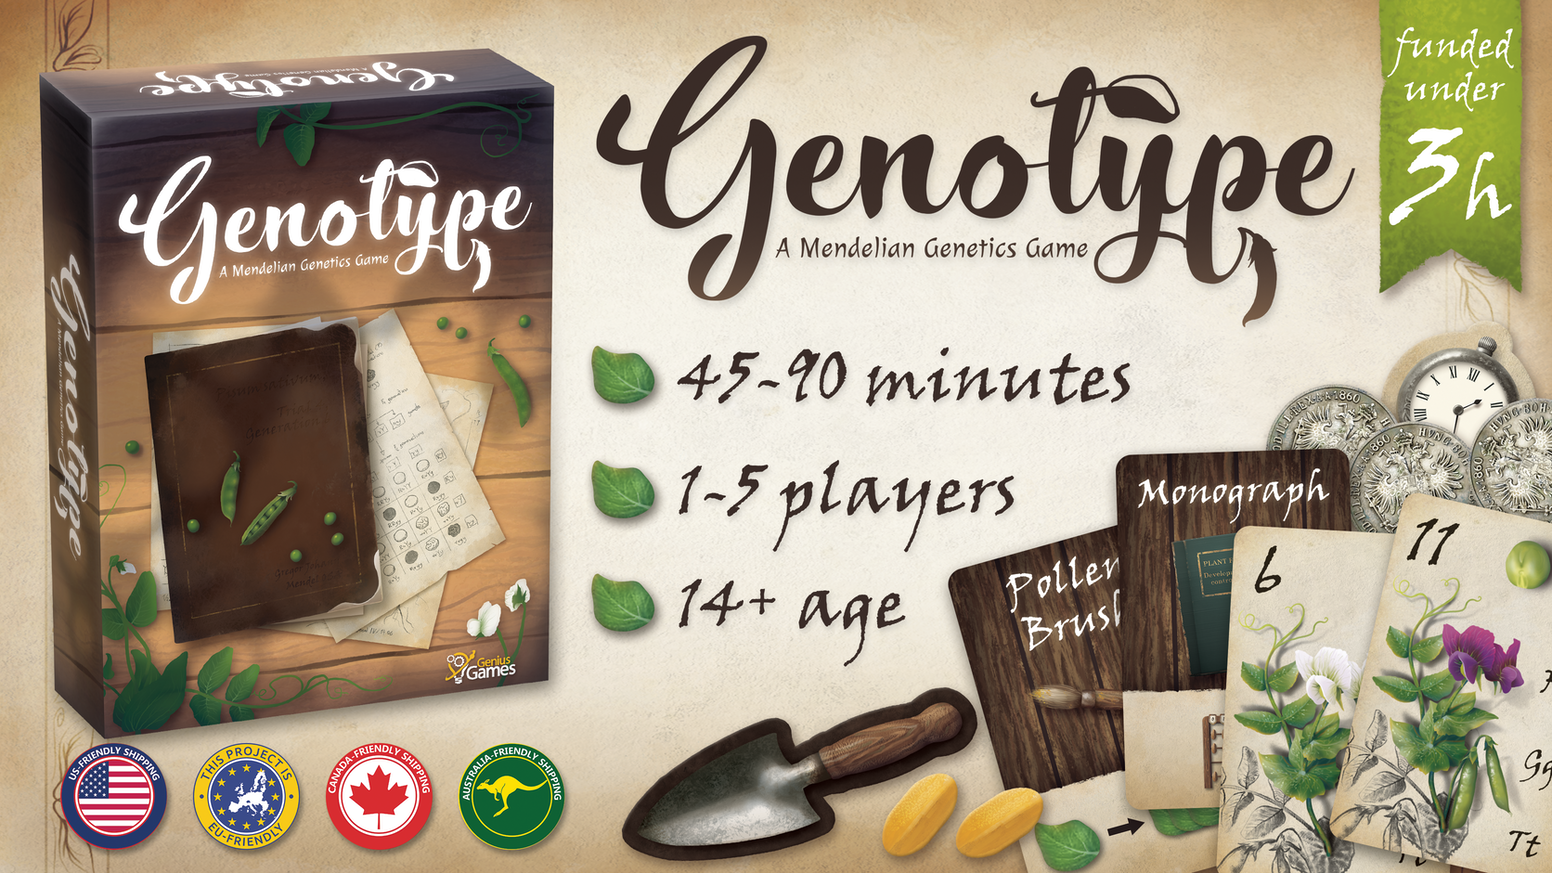 A worker placement and dice drafting game built upon Gregor Mendel's work with genetics and pea plants.